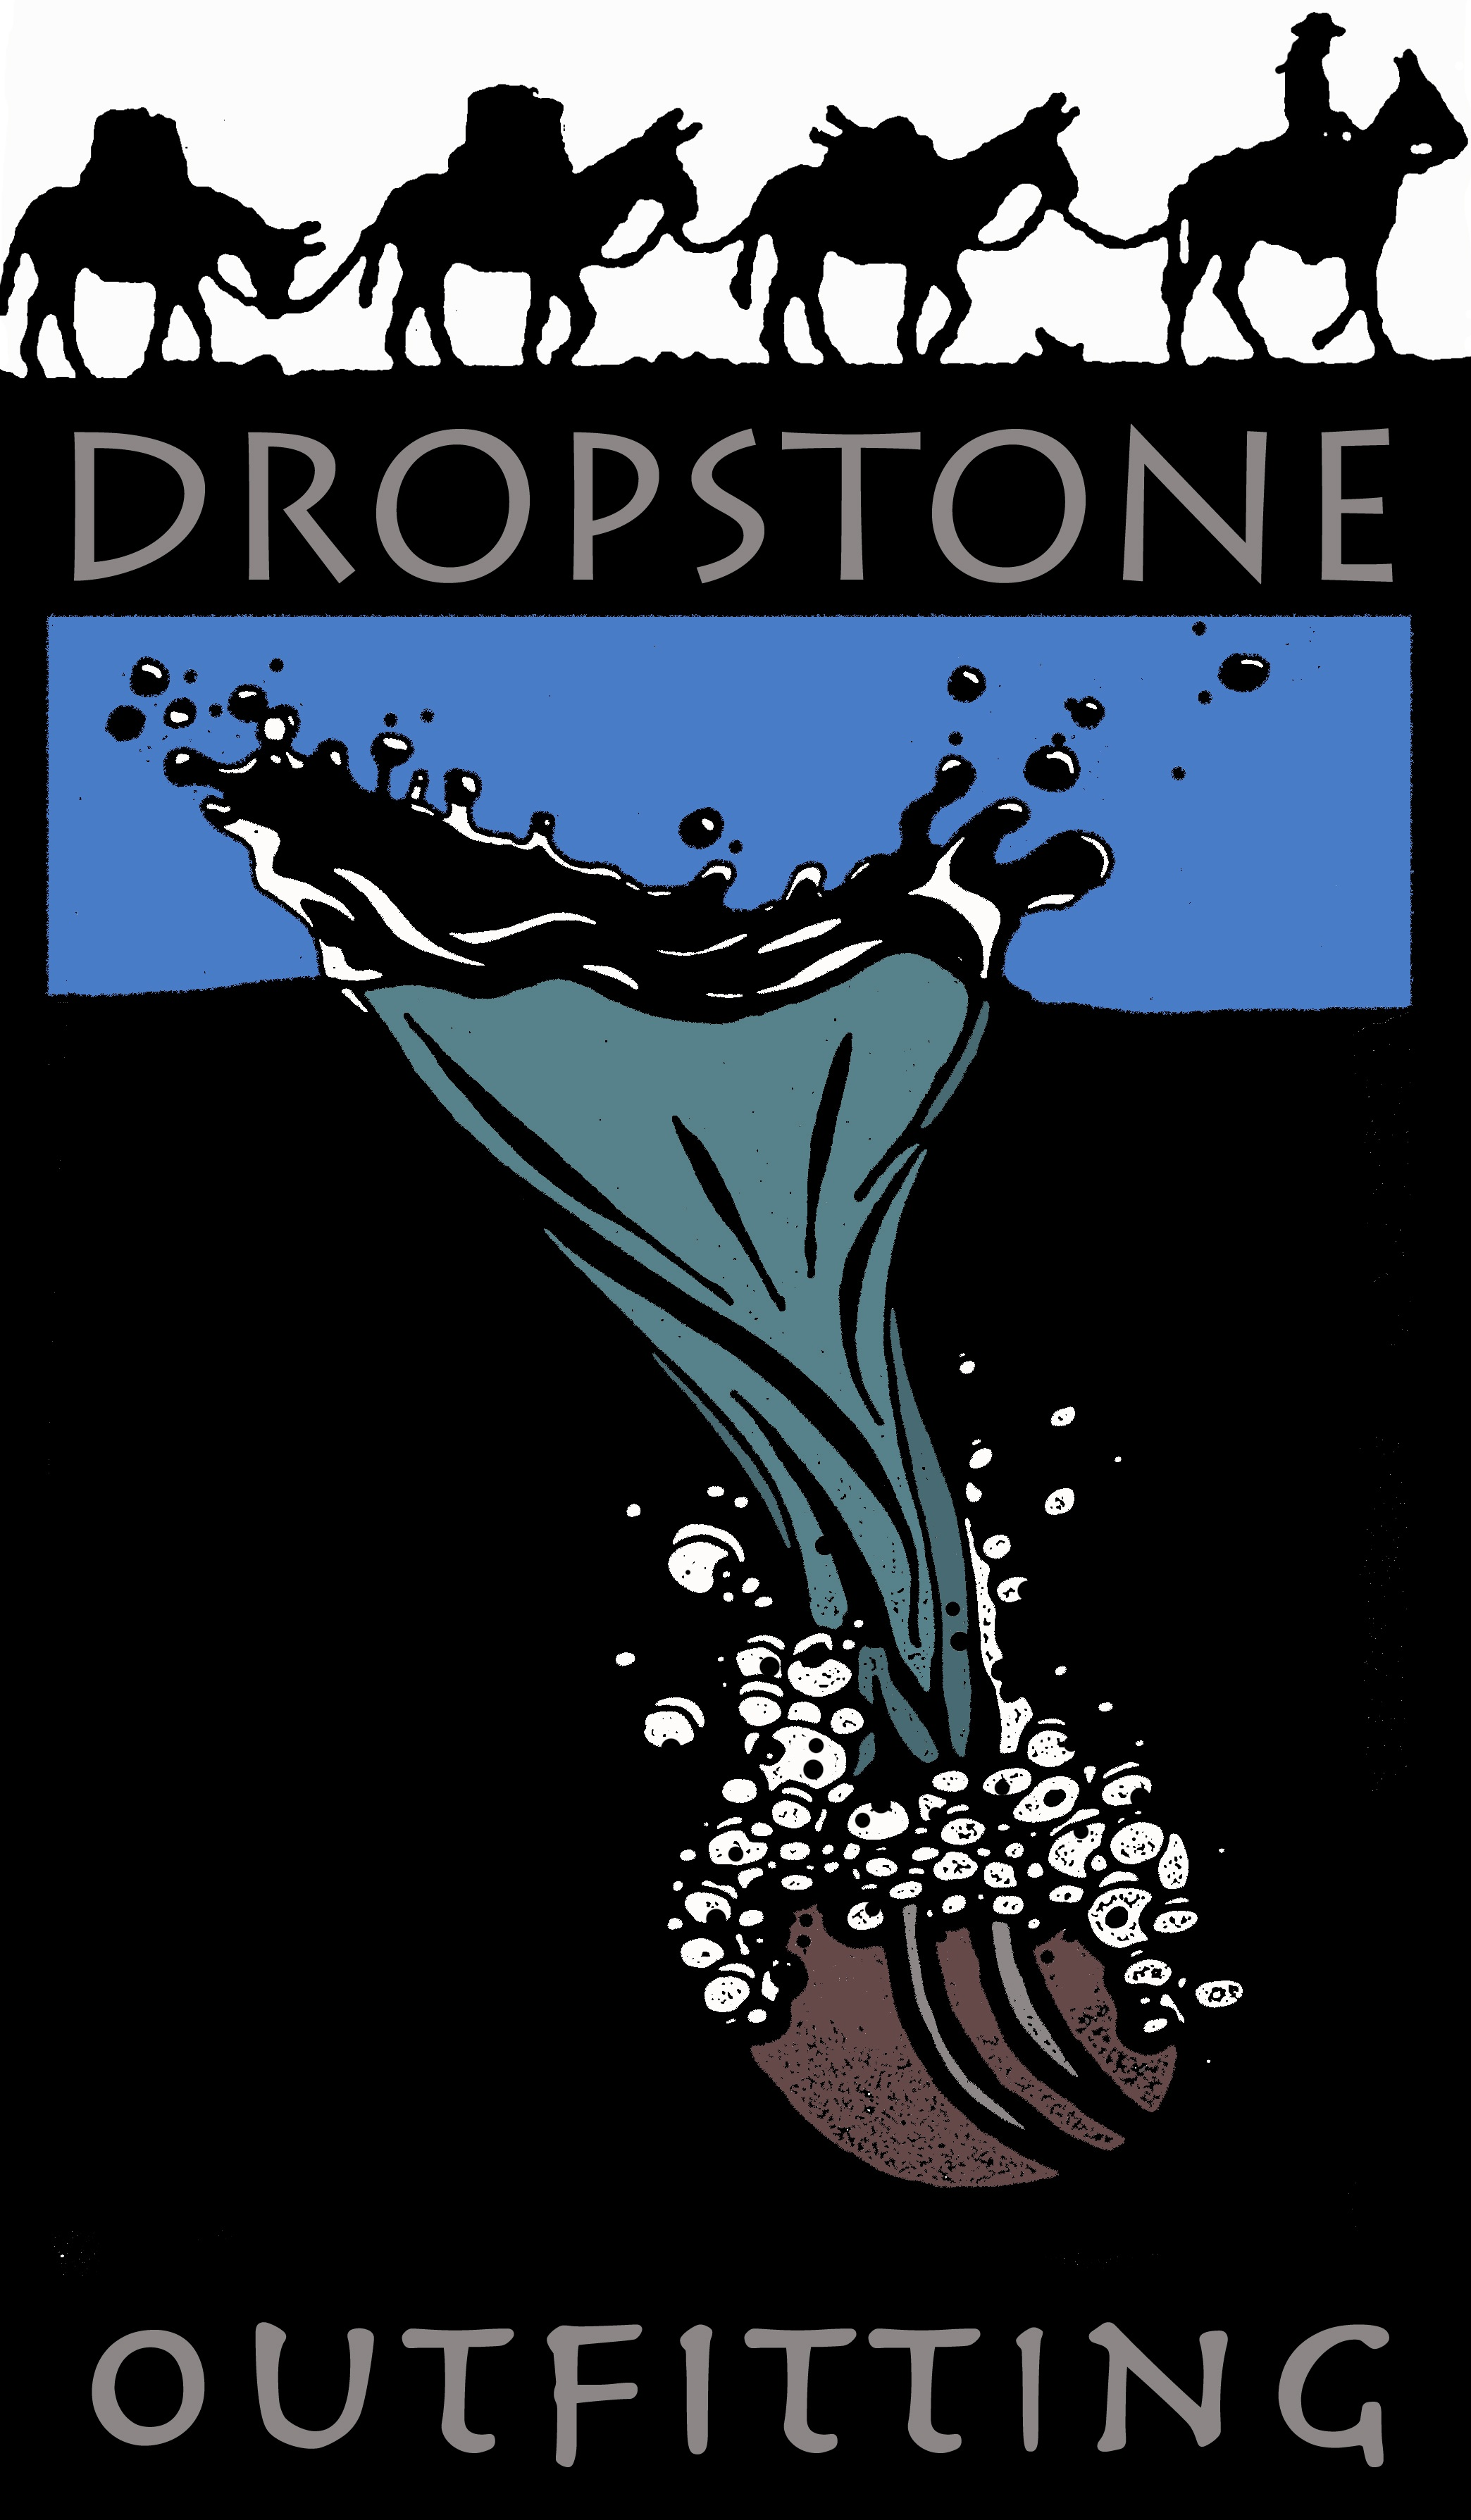 Dropstone Outfitting